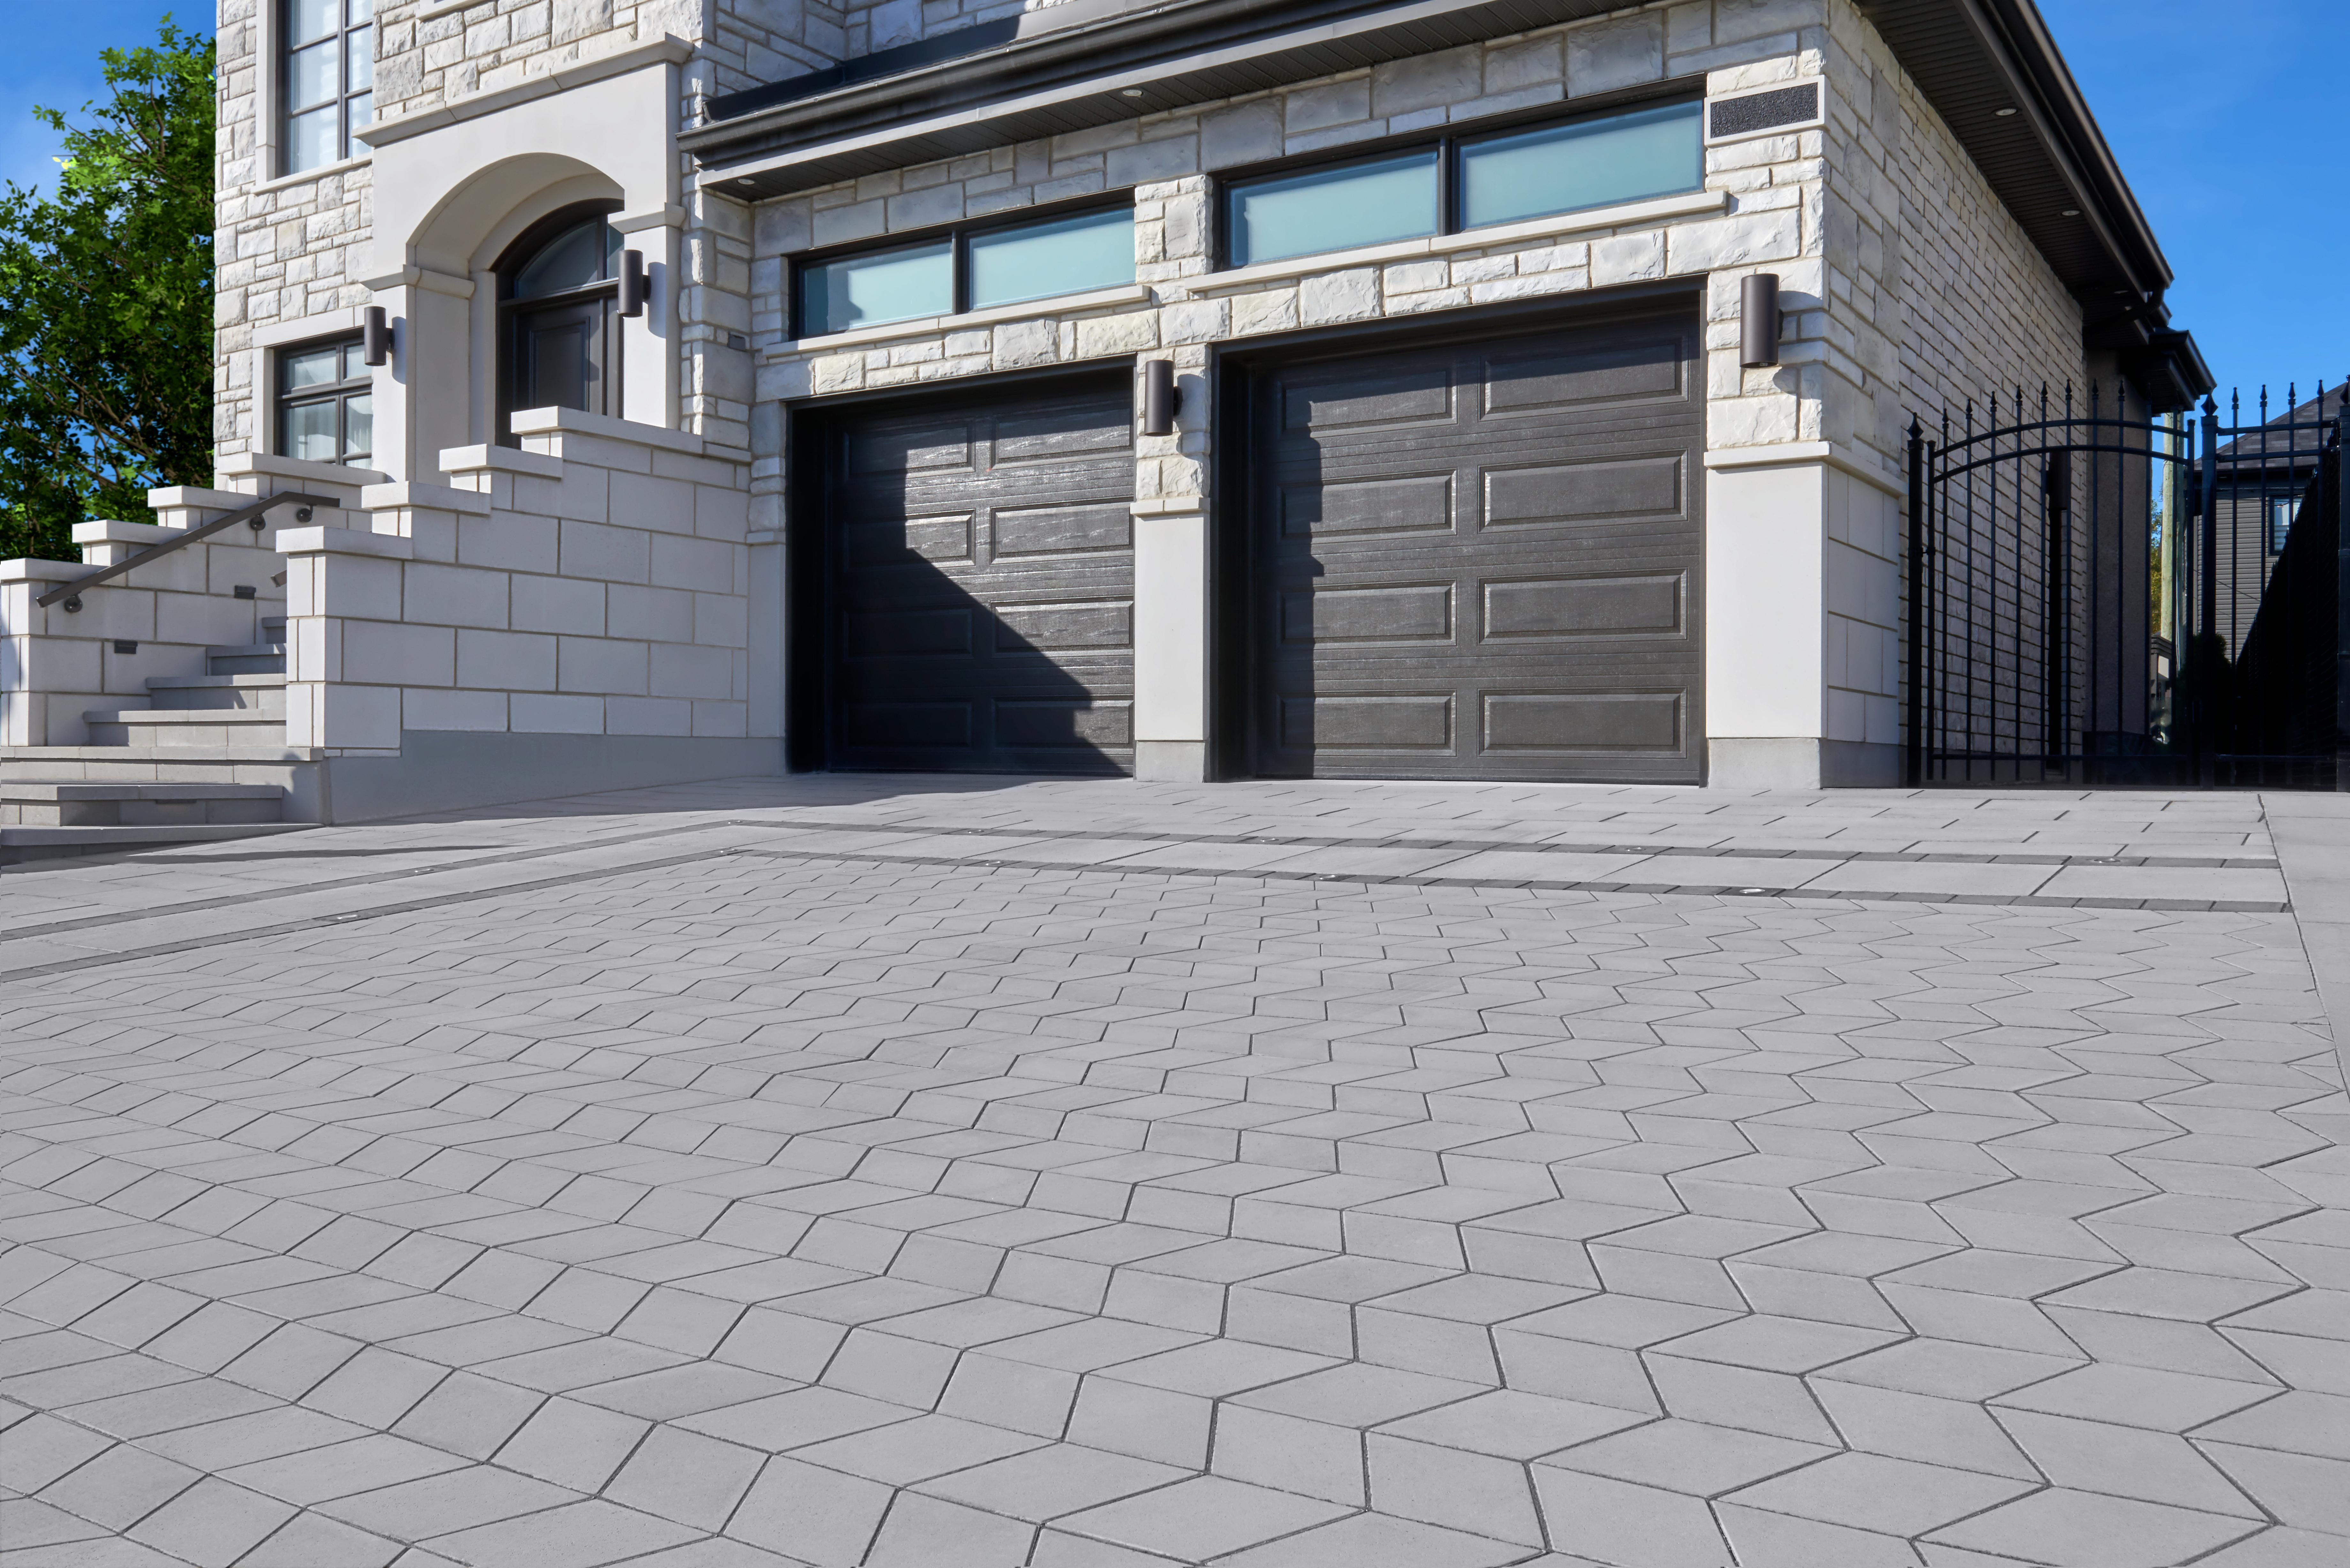 Diamond Smooth Pavers in charcoal